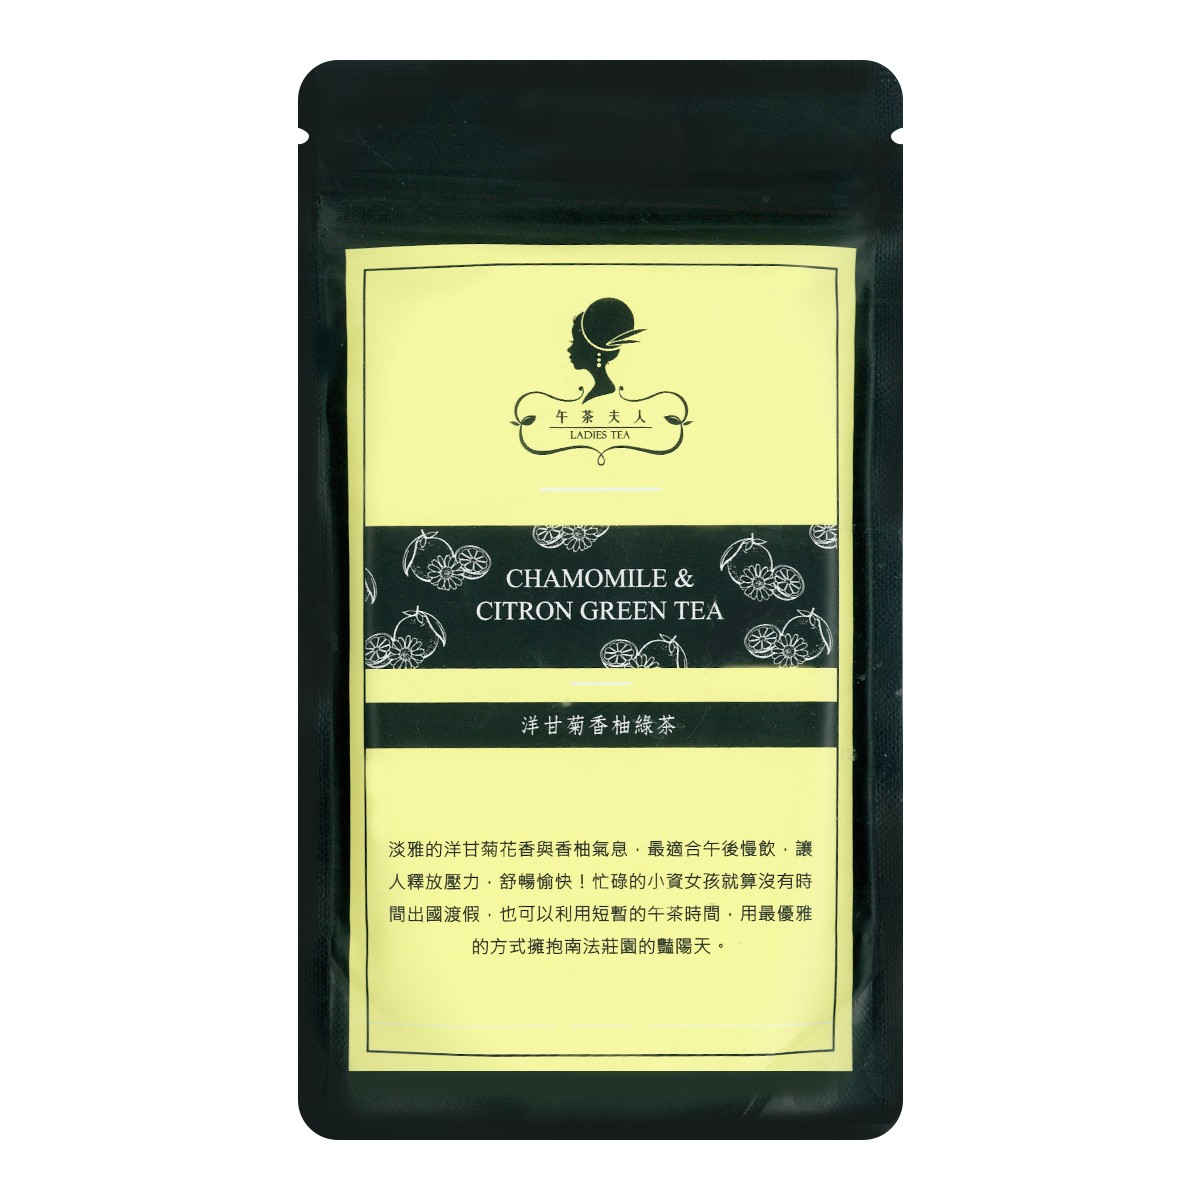 LADIES TEA Chamomile&Citron Green Tea 16g